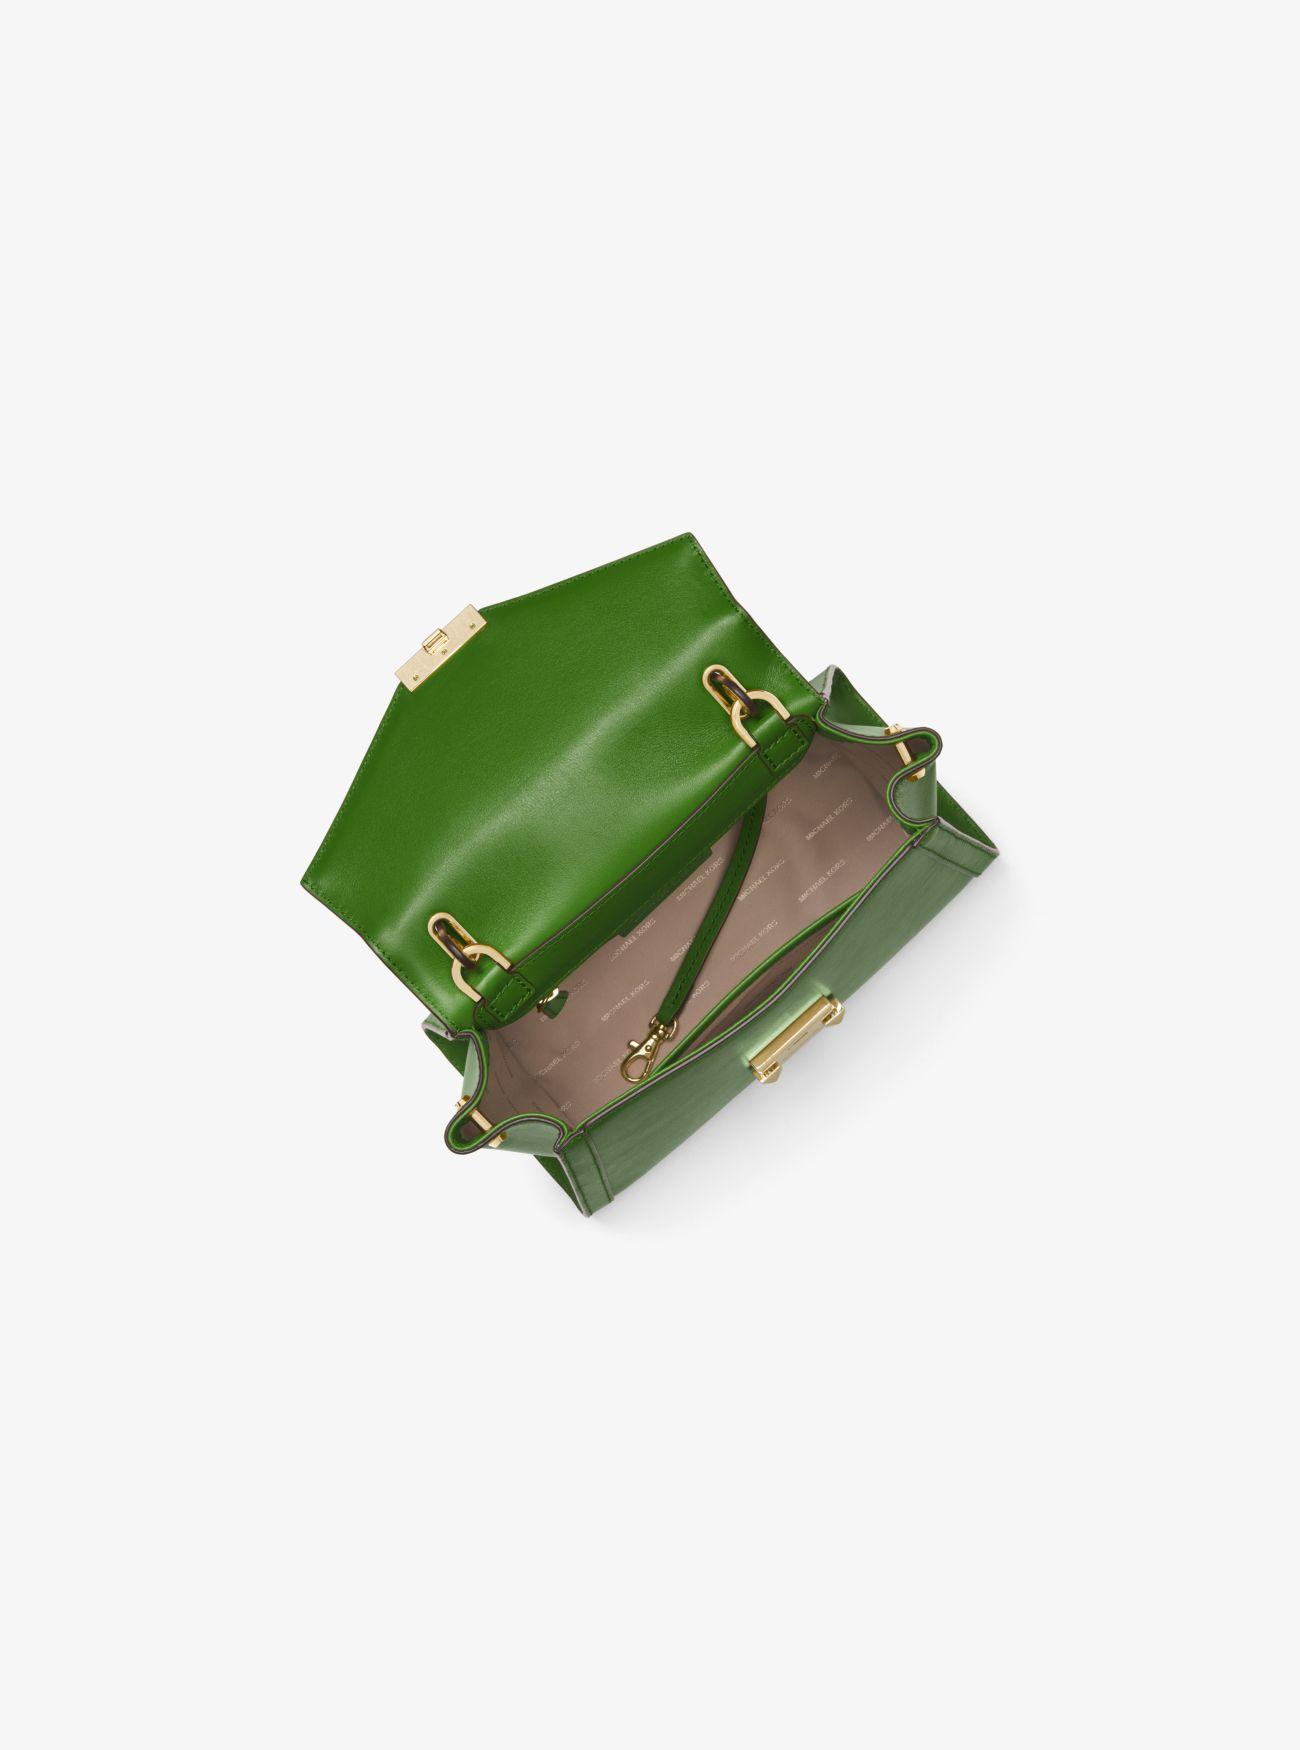 3cb7cdecb930 Michael Kors Whitney Medium Leather Satchel in Green - Lyst